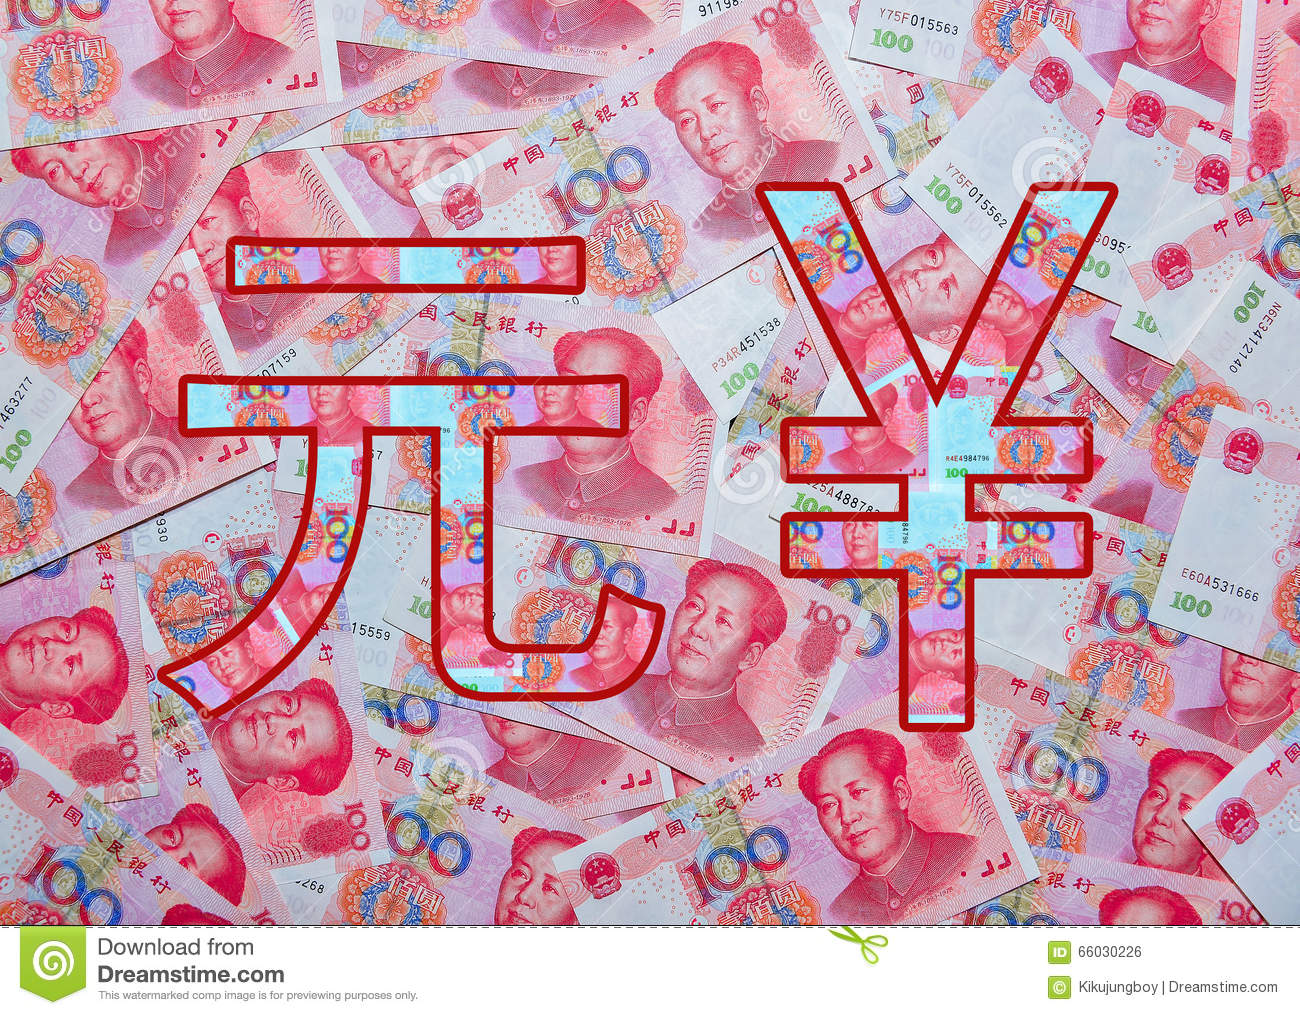 Rmb symbol of chinese currency with bank note stock photo image of rmb symbol of chinese currency with bank note buycottarizona Gallery